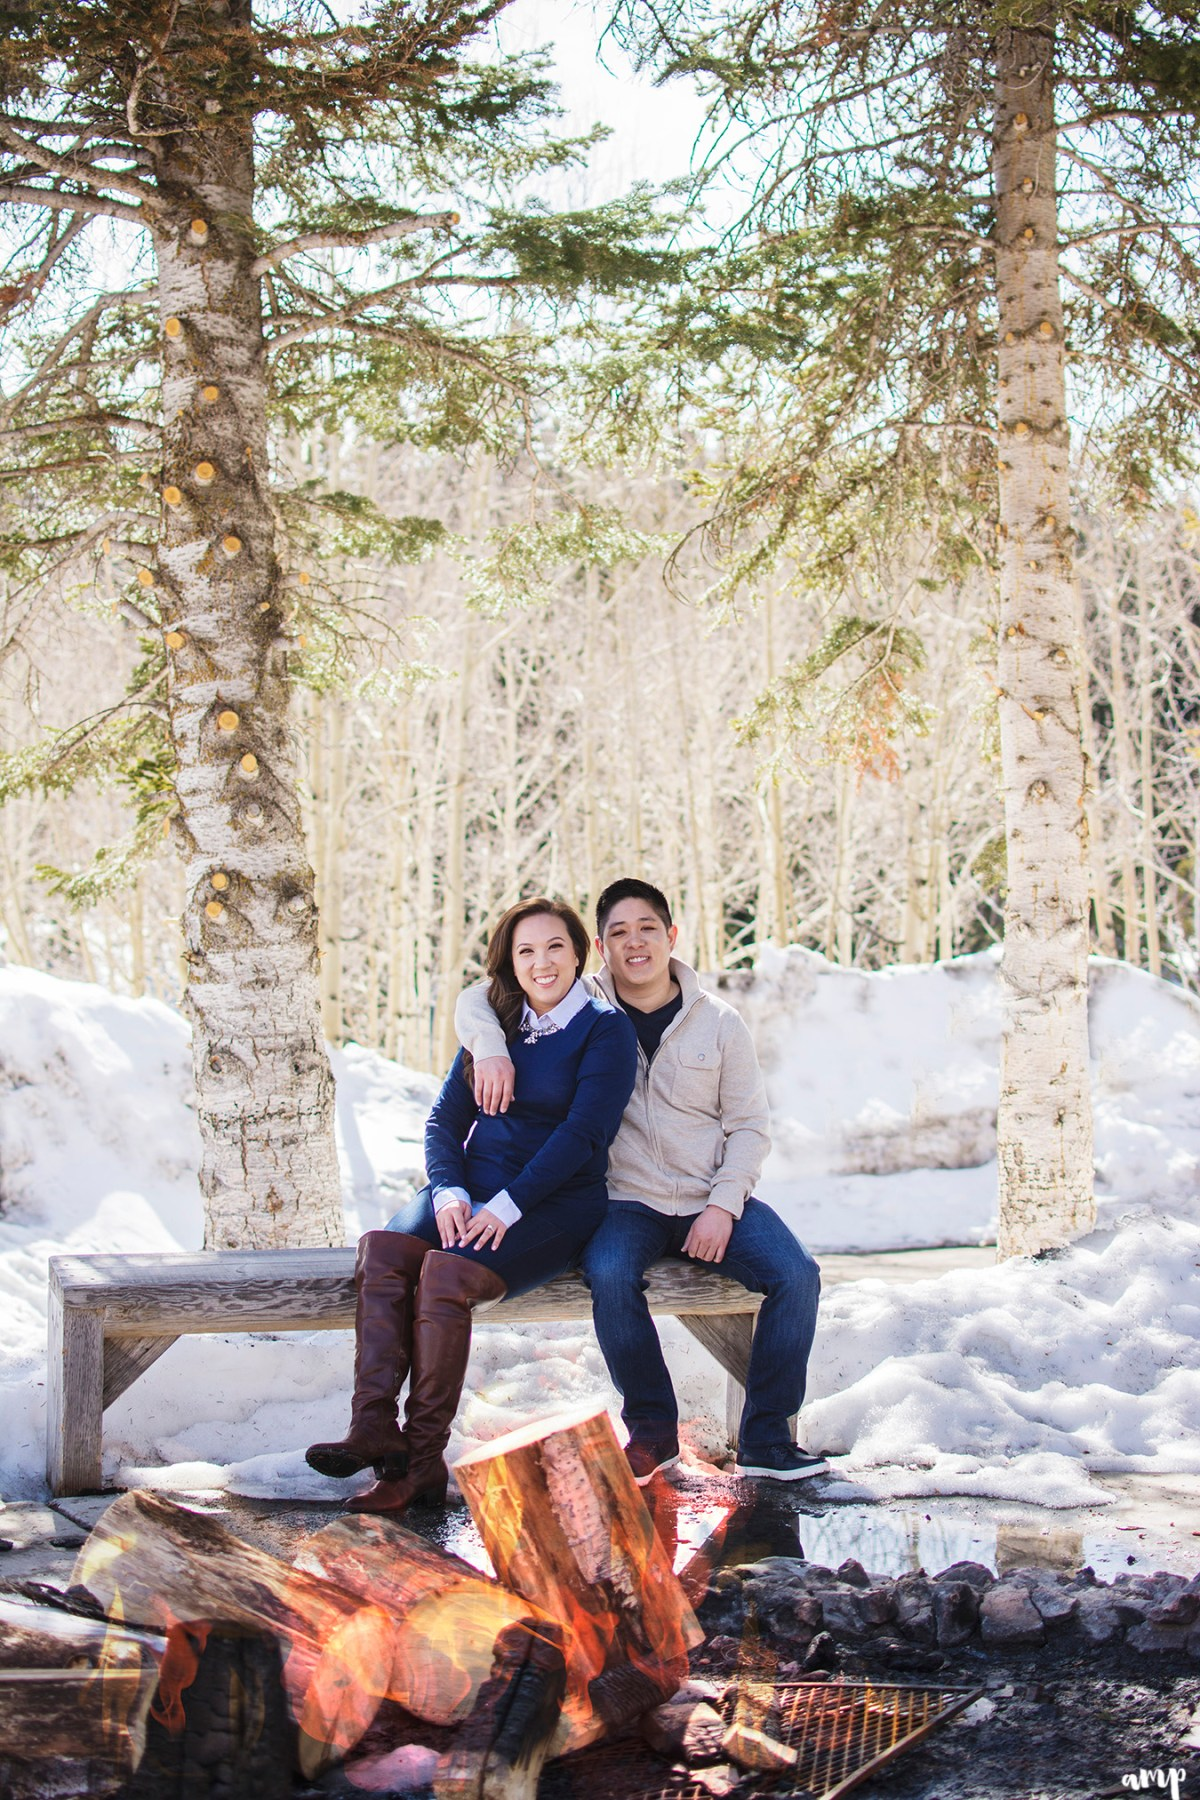 Engaged couple sitting beside bonfire surrounded by snow